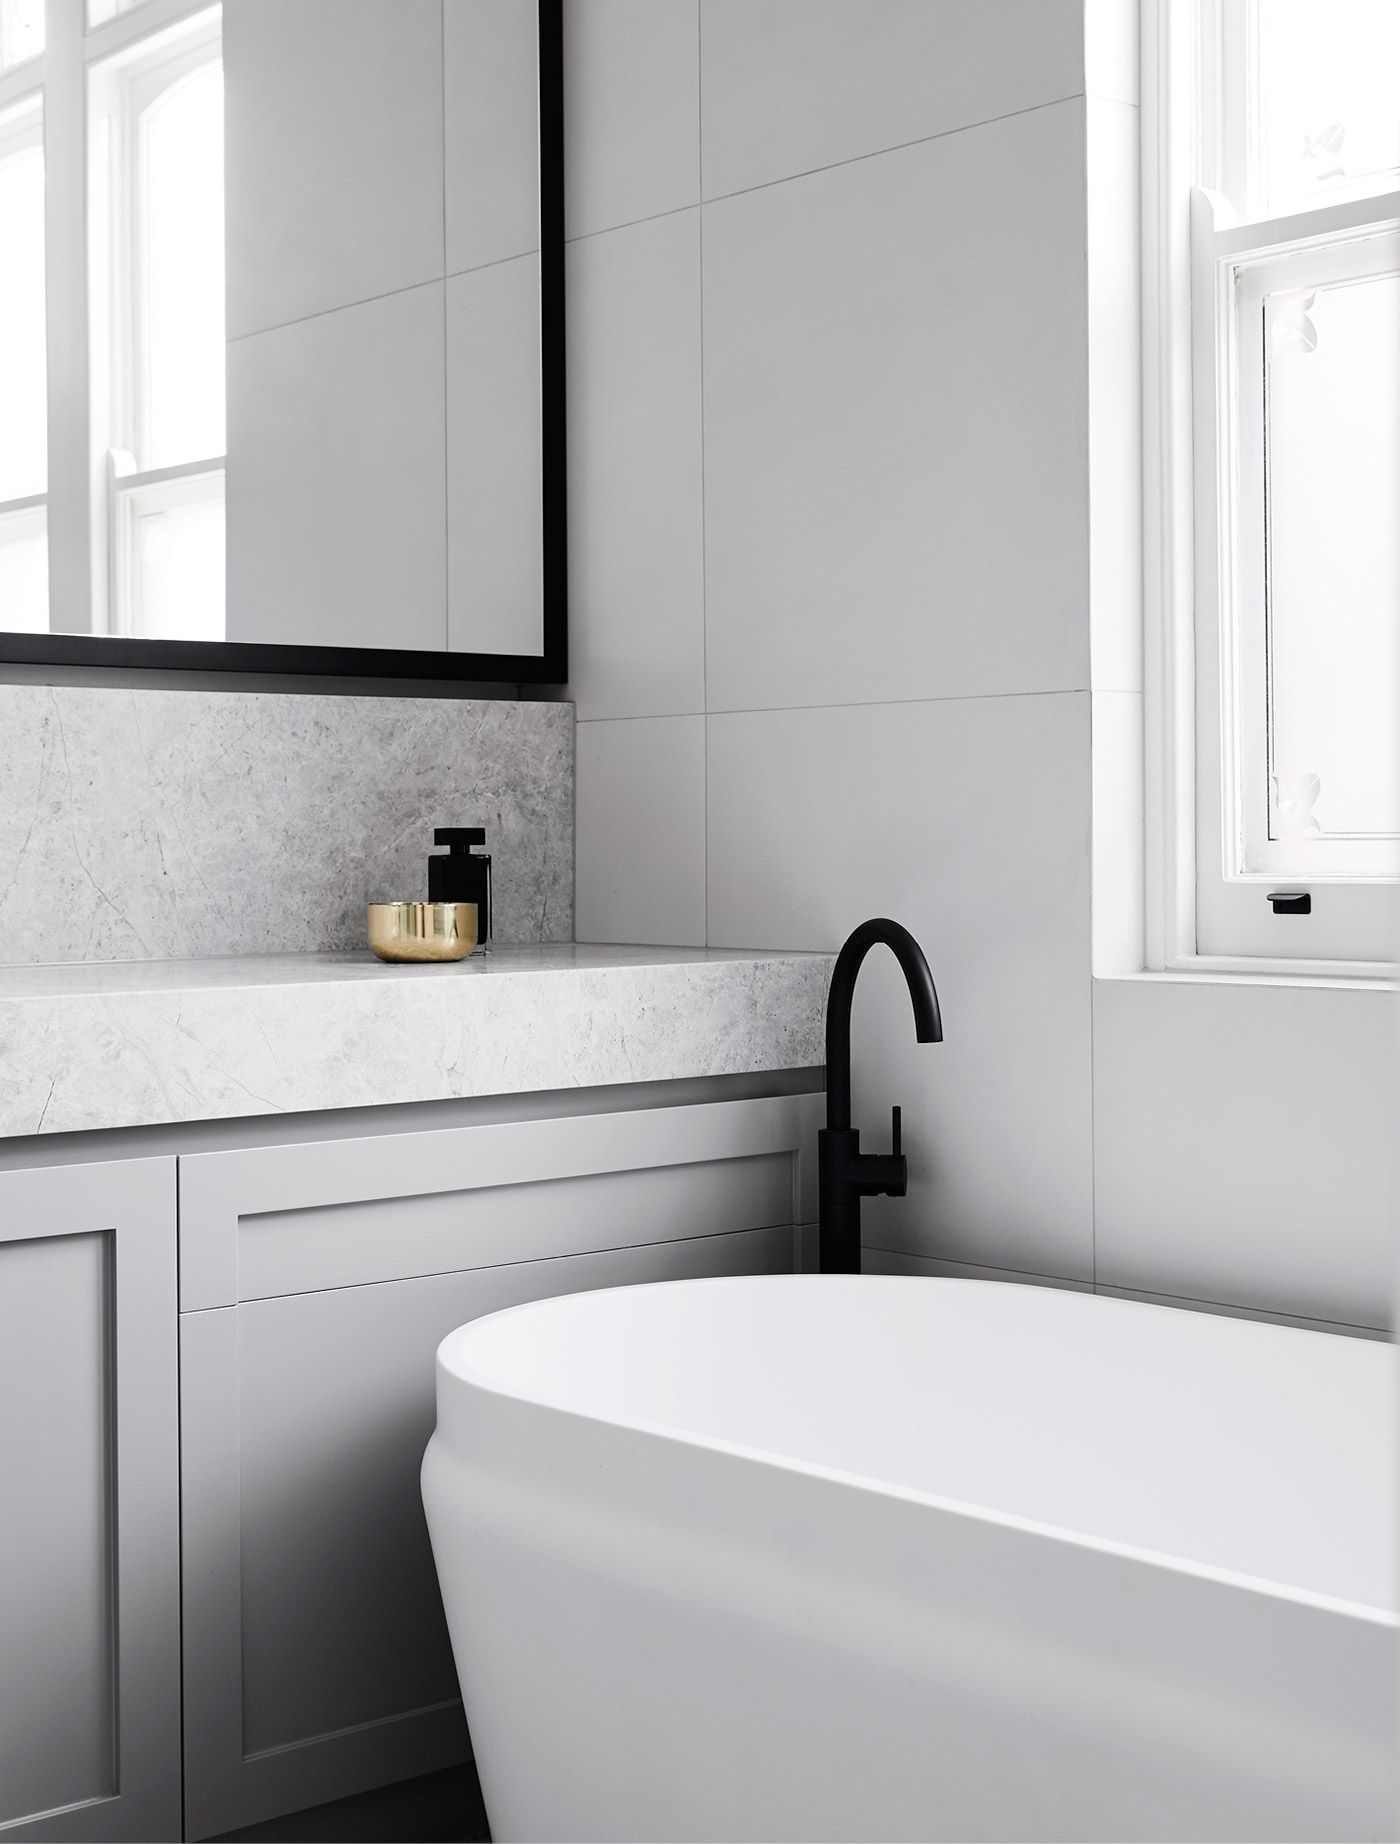 Pin by giulia paganucci on interiorsolution pinterest soft